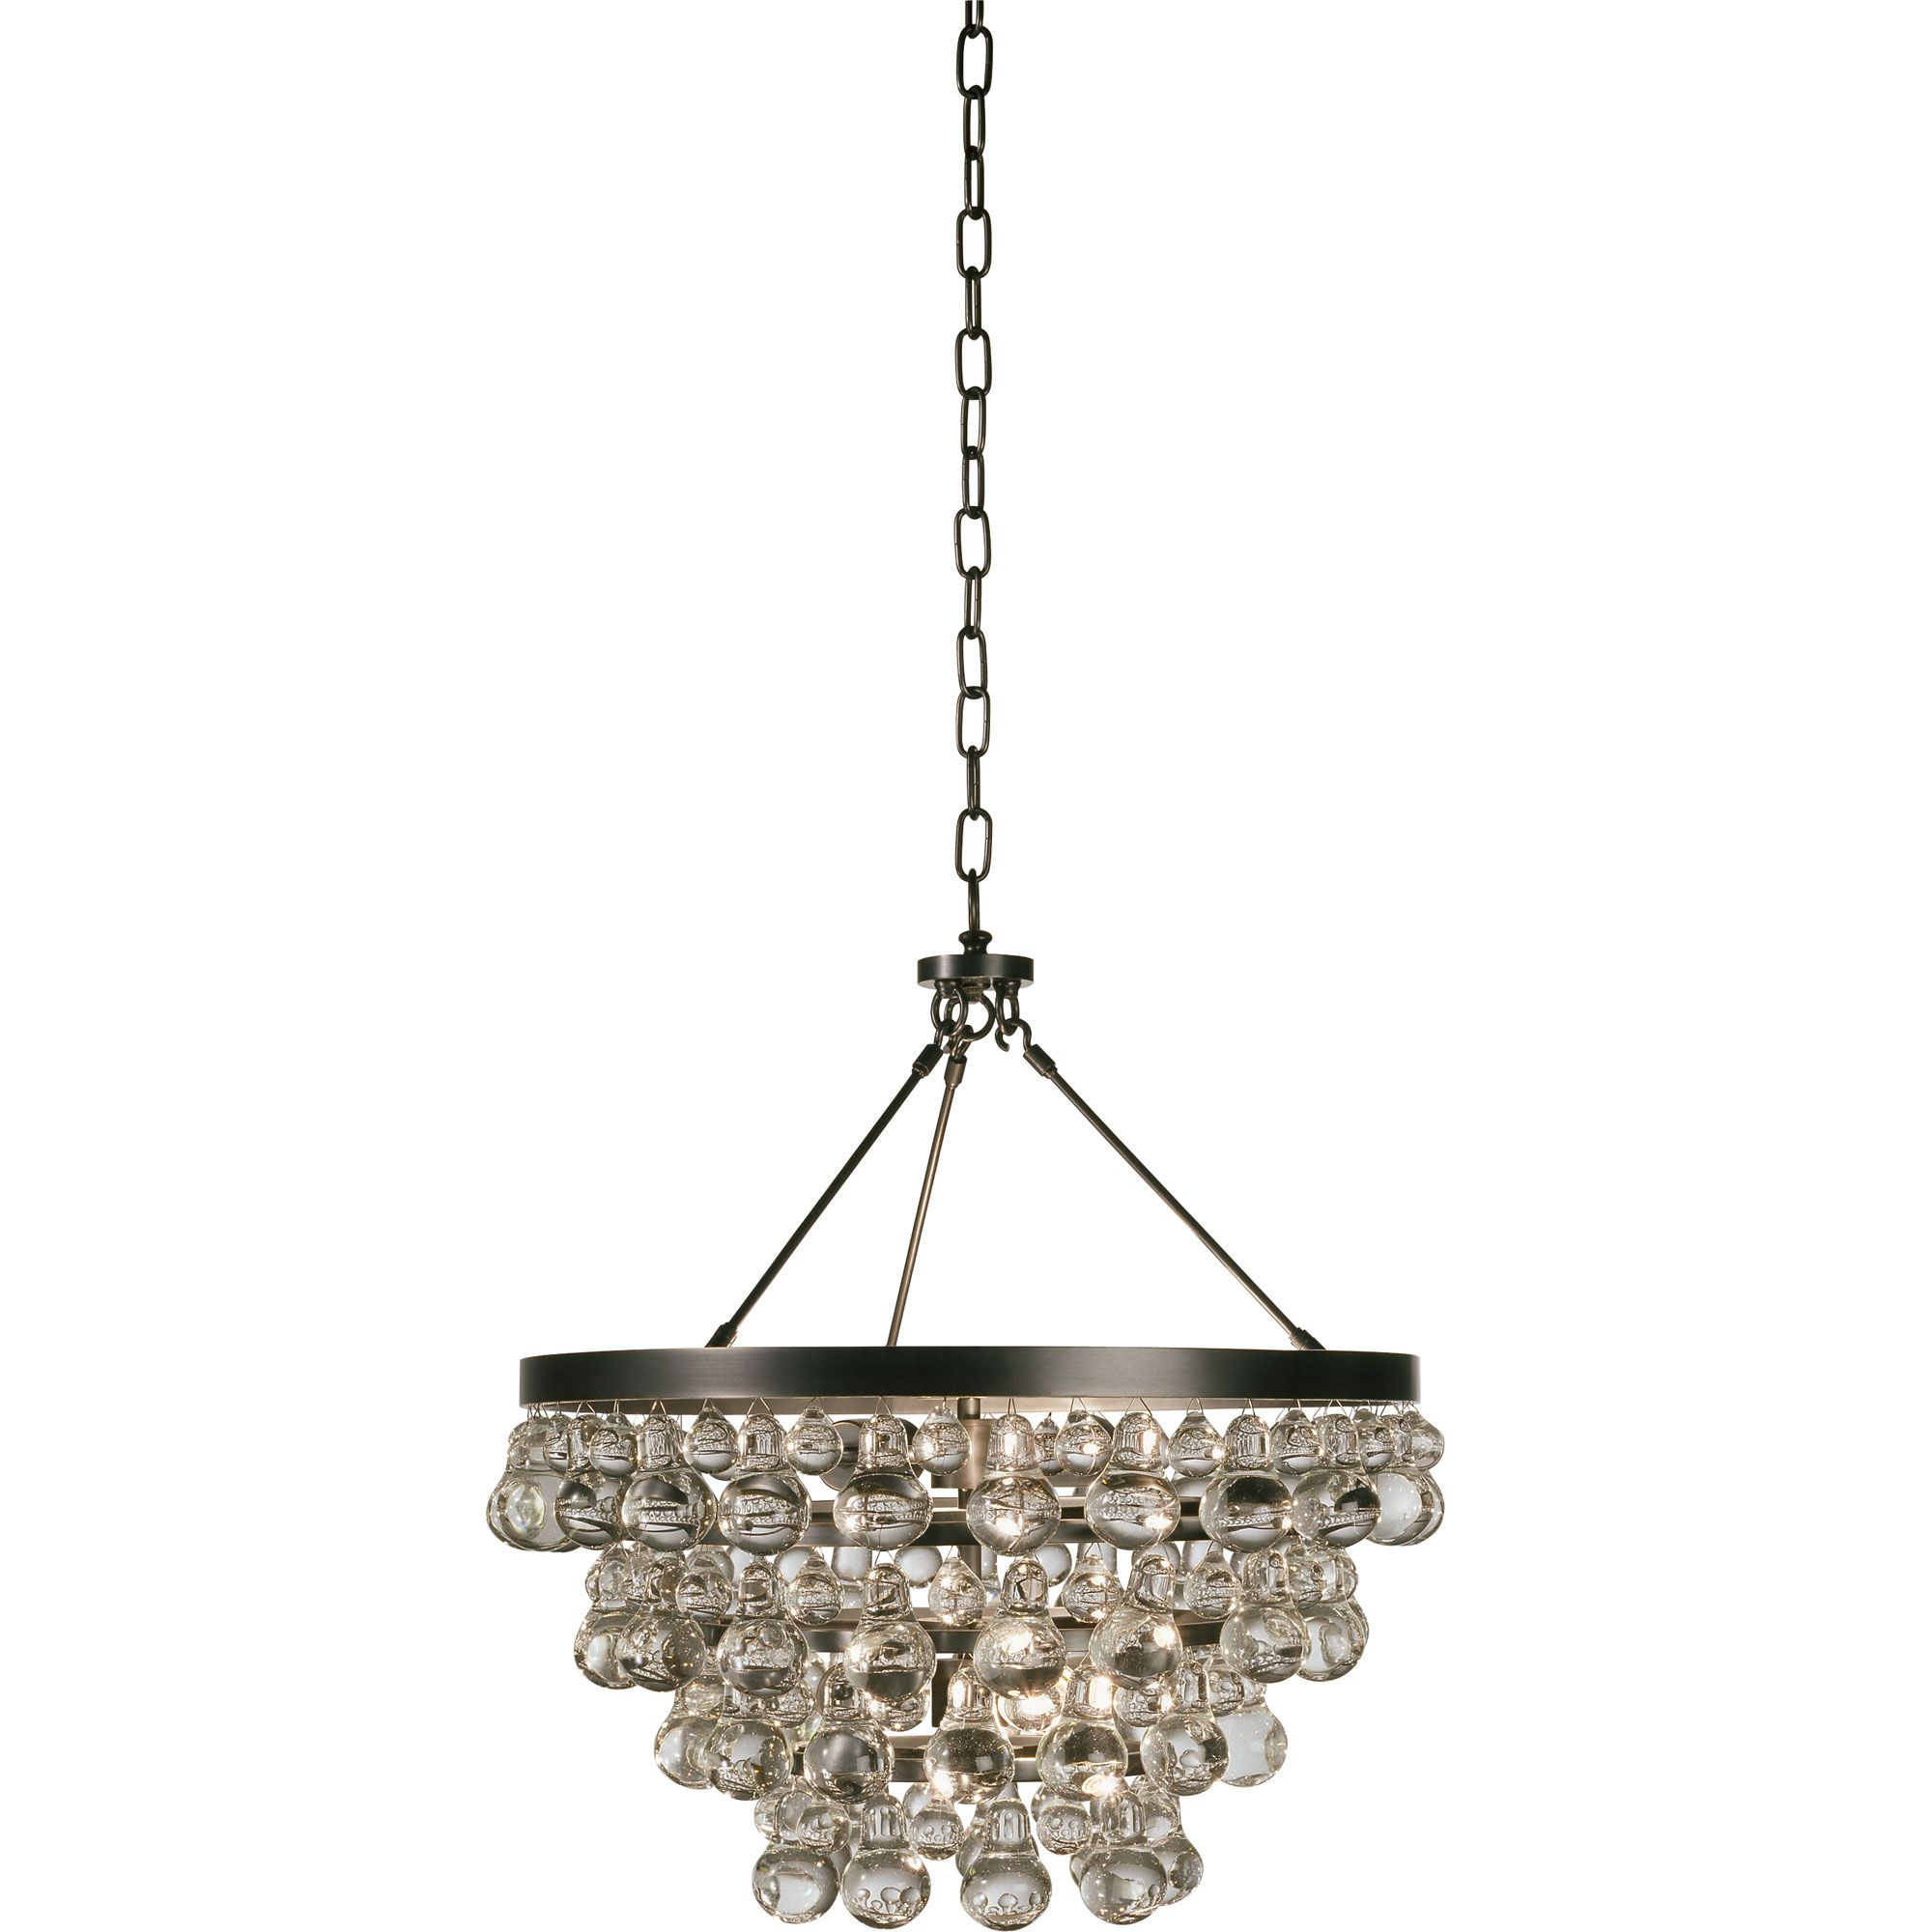 The Bling Chandelier features Crystal drops with an Antique Brass